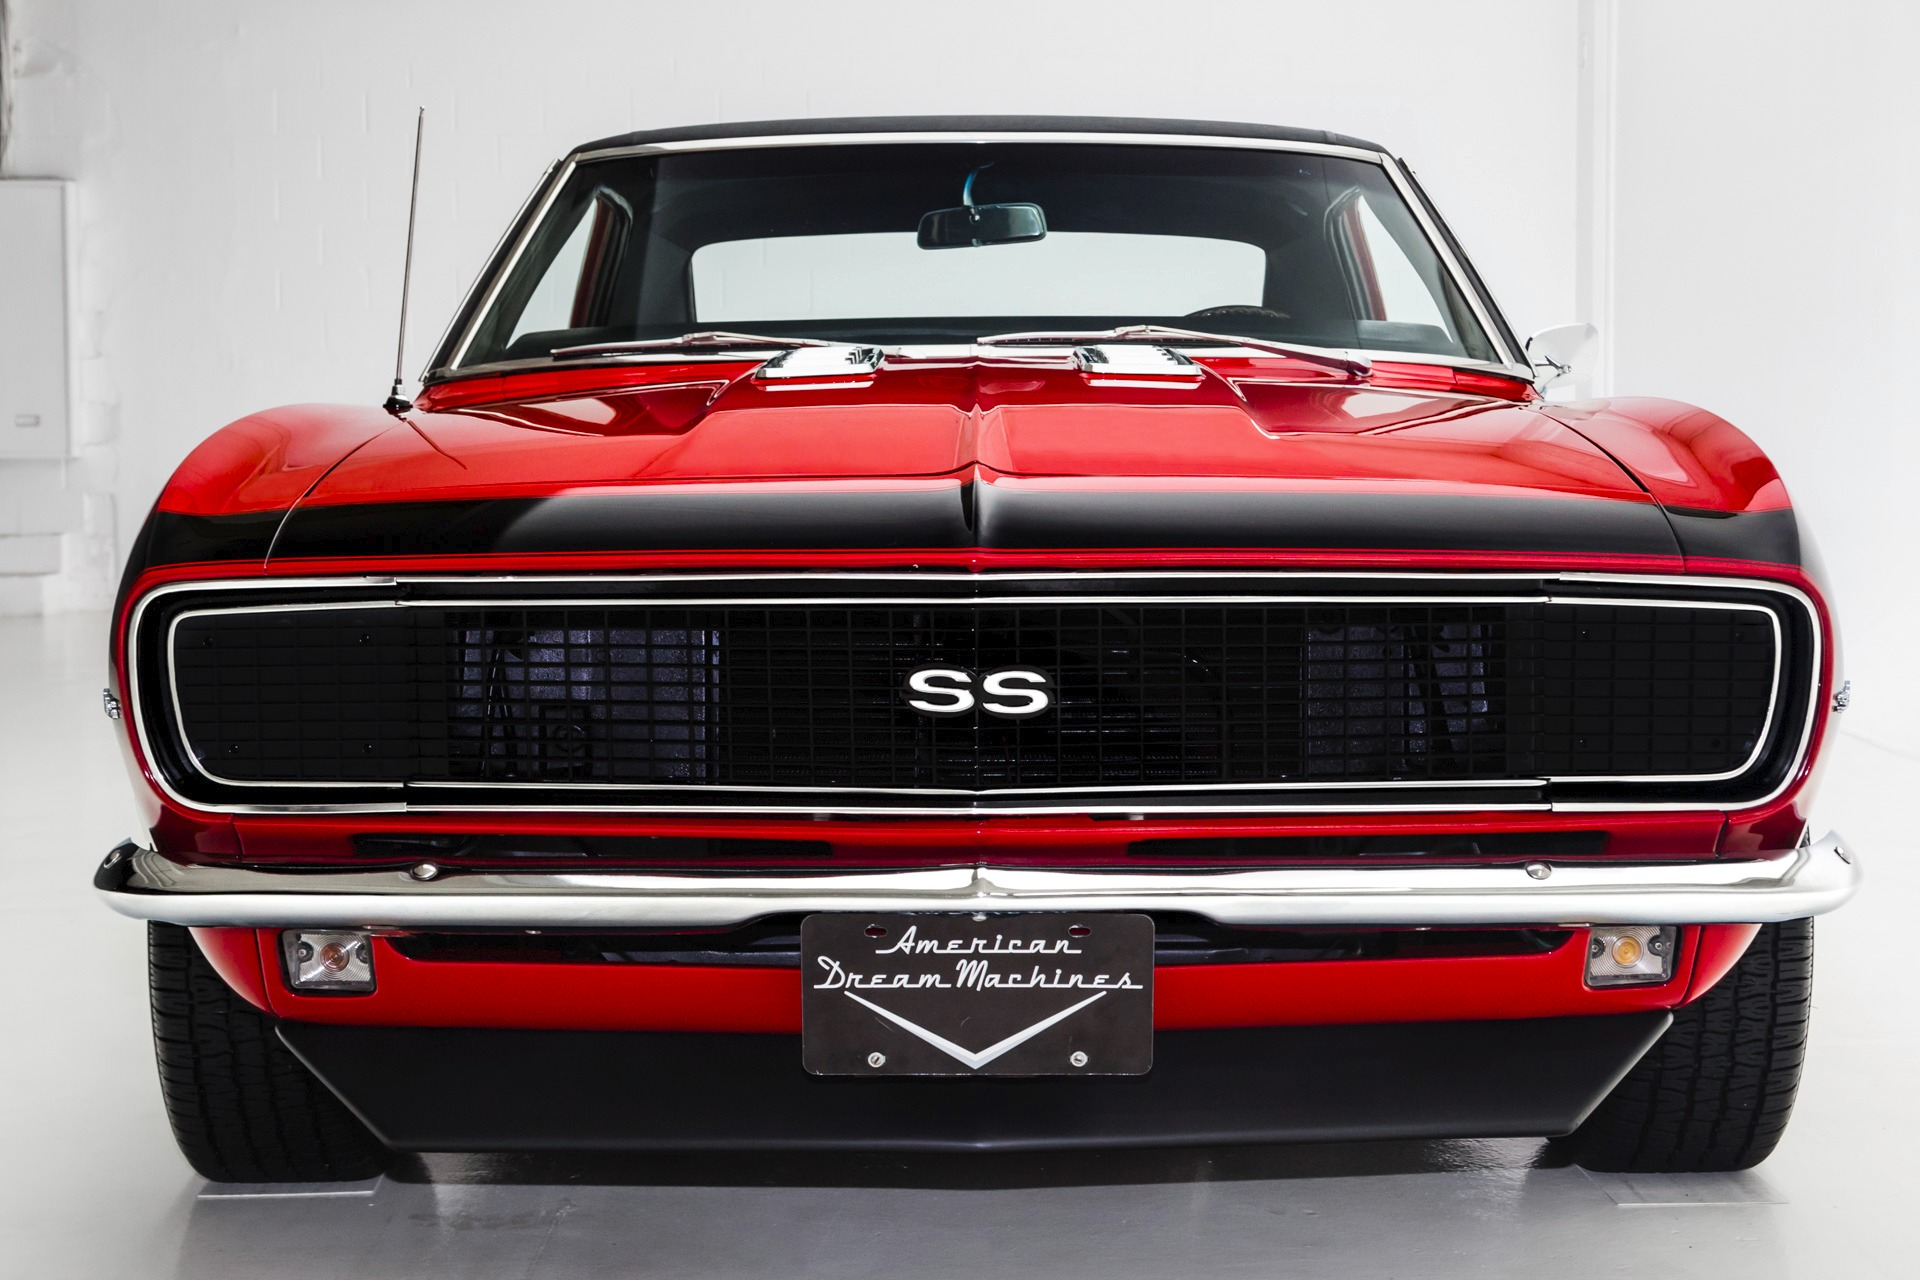 1968 Chevrolet Camaro True RS/SS #\'s Match 396 - American Dream ...